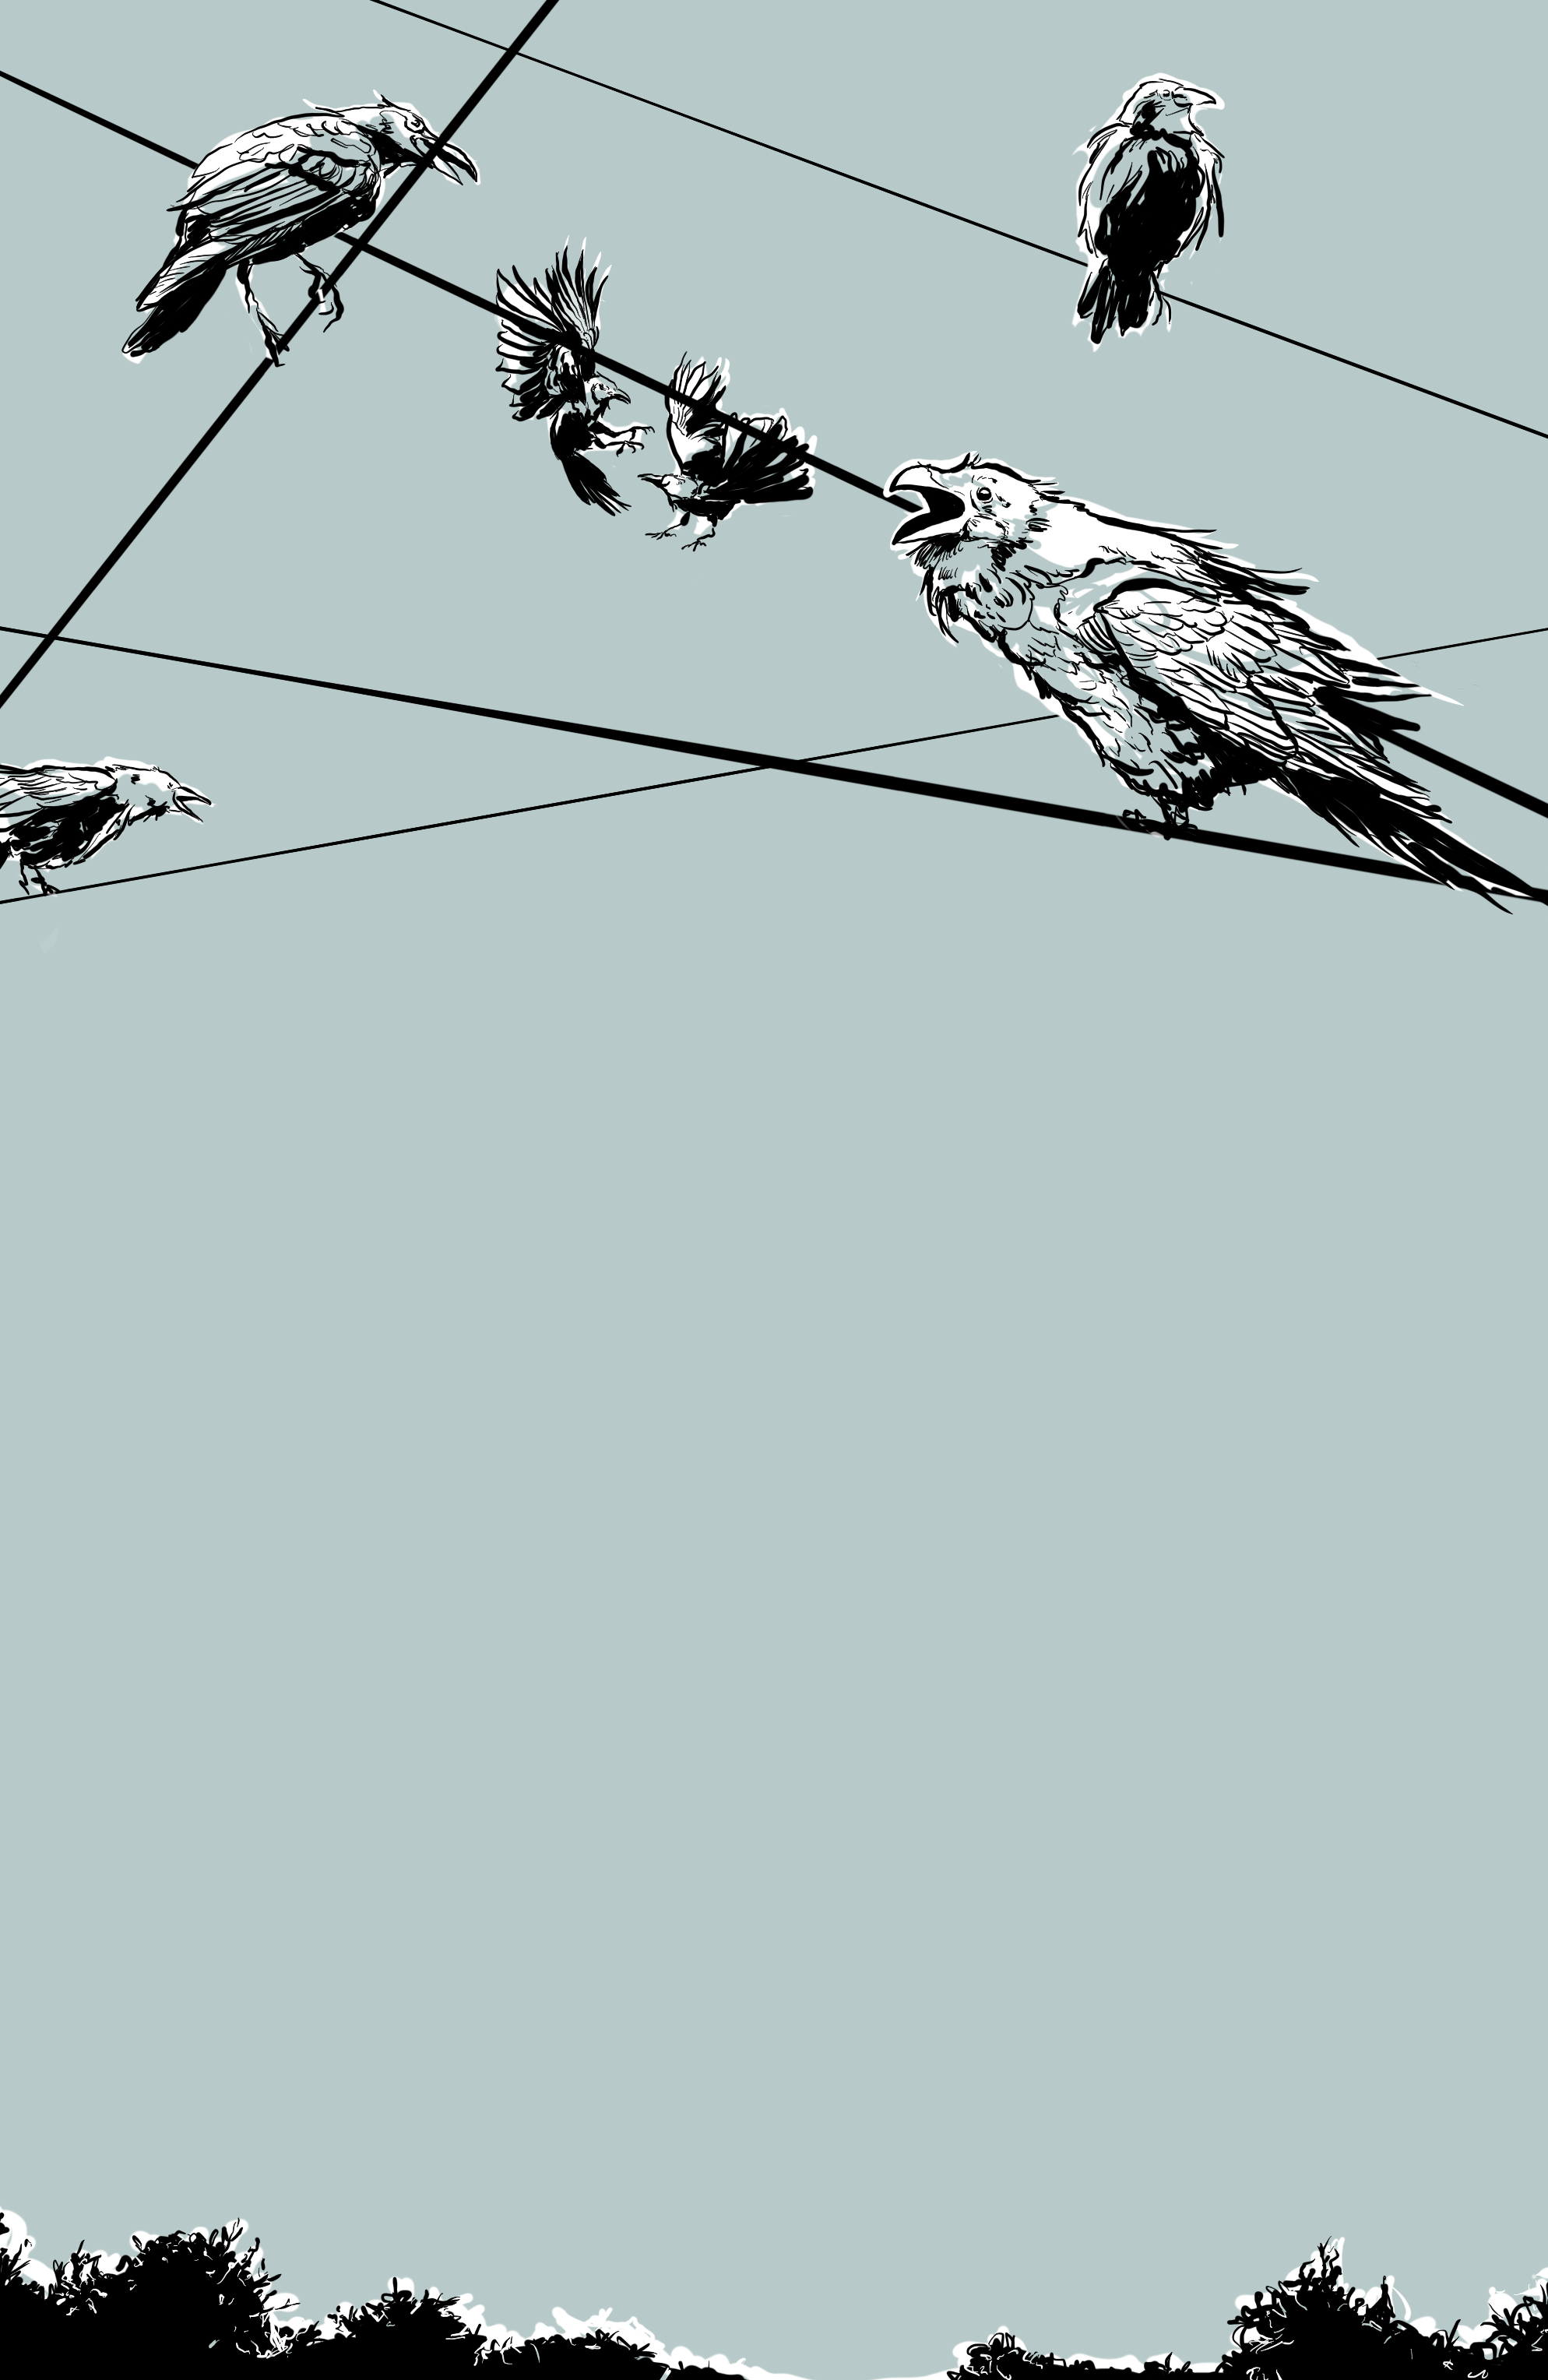 Untitled Crows (graphic novel in progress), Digital Illustration, Lisette Murphy, 2016